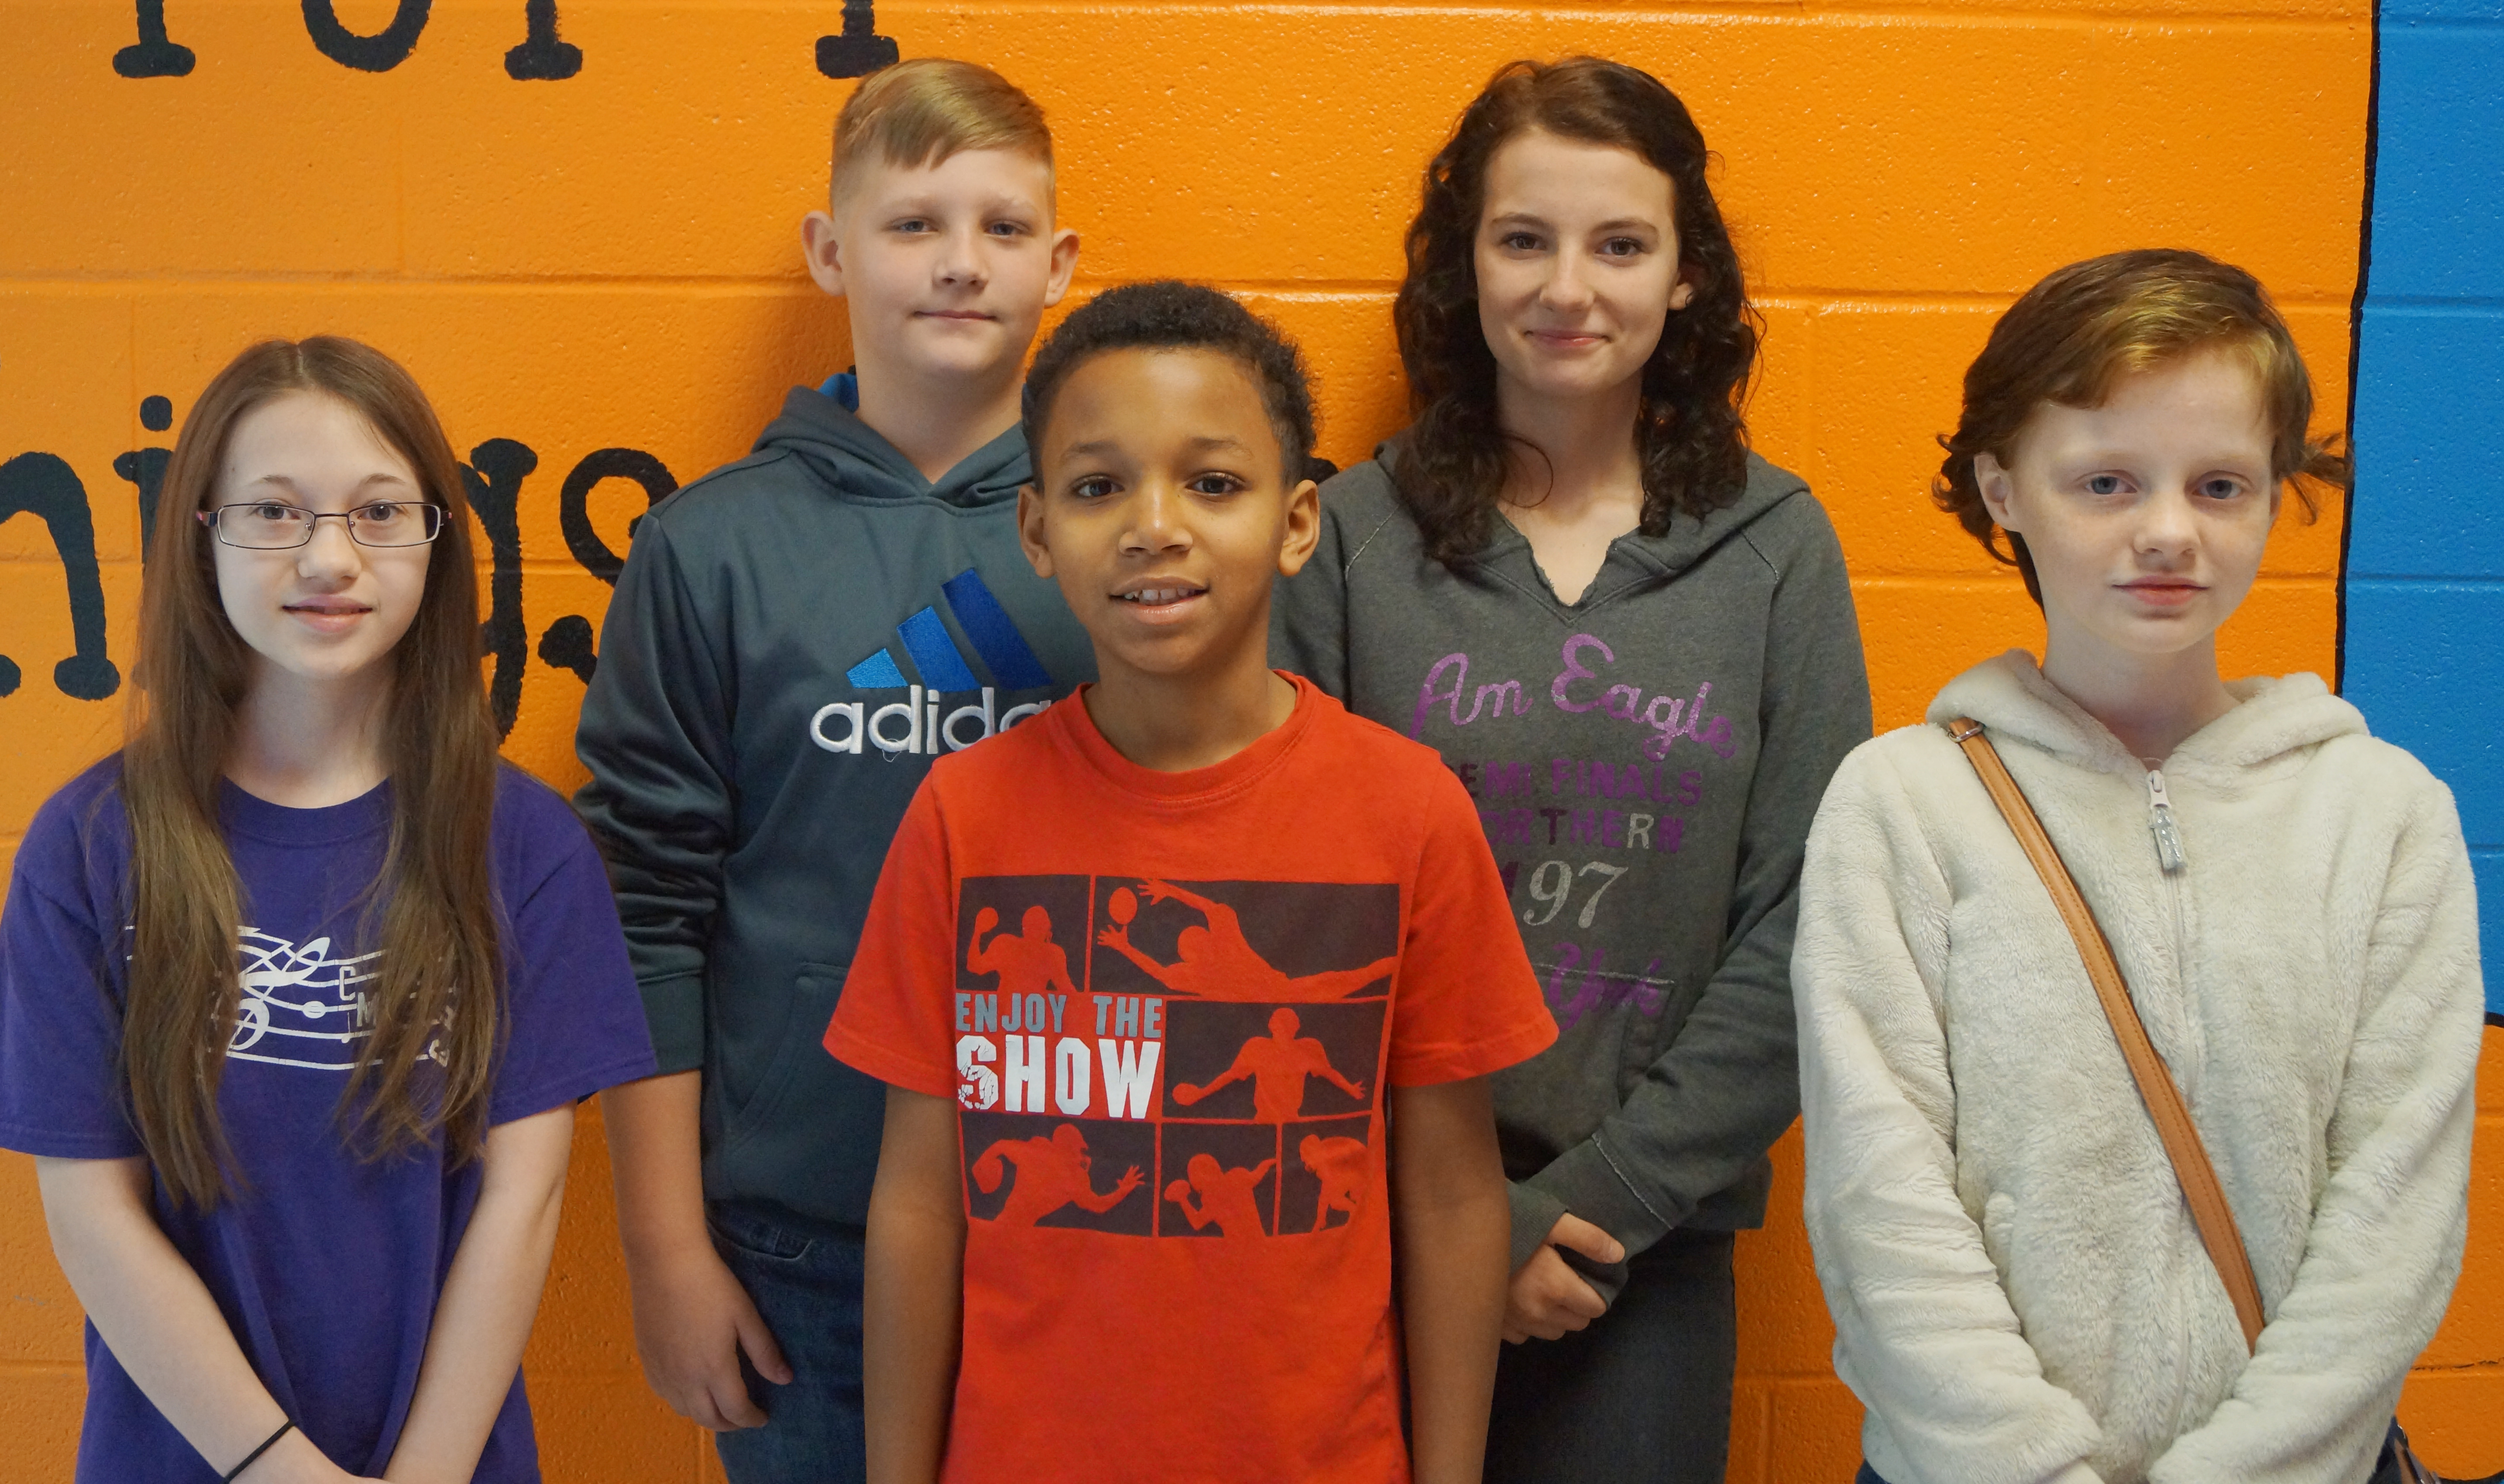 From left are seventh-grader Cailet Clark, fifth-grader Jesse King, fourth-grader J. J. Curley, eighth-grader Natasha Combs and sixth-grader Haley Gutierrez.